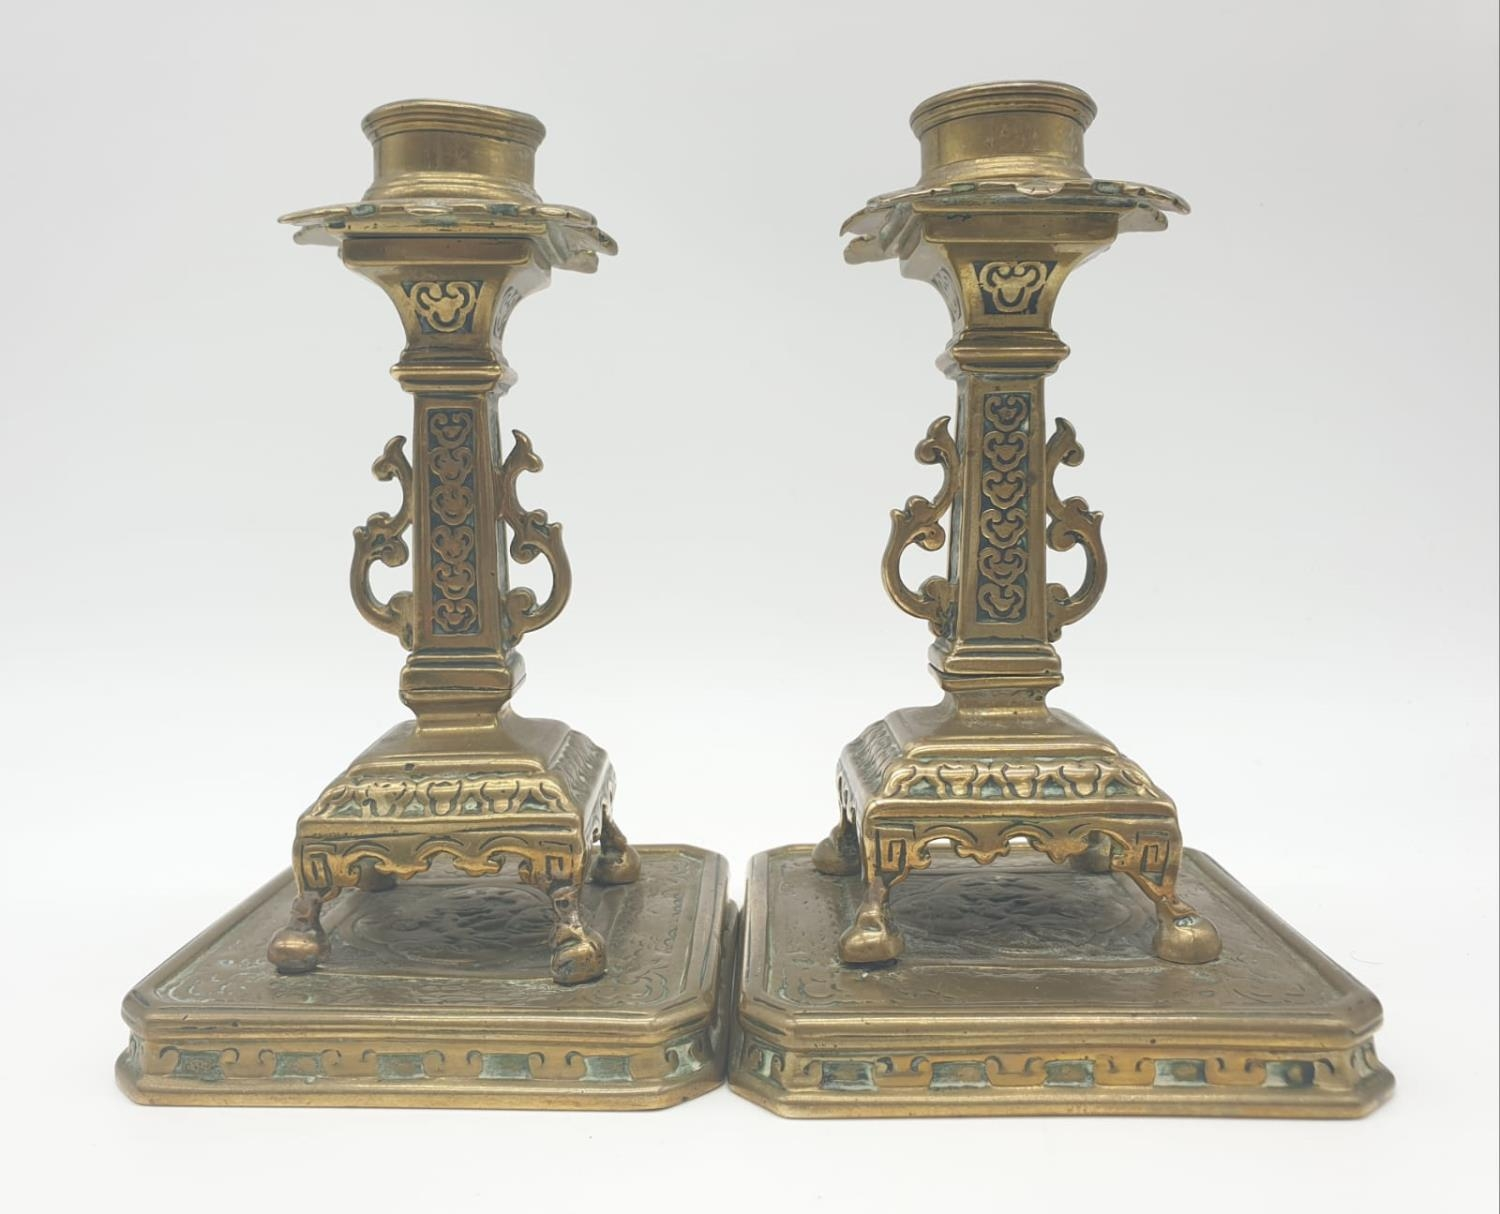 Pair of 19th century Chinese cast candlesticks 16cm tall